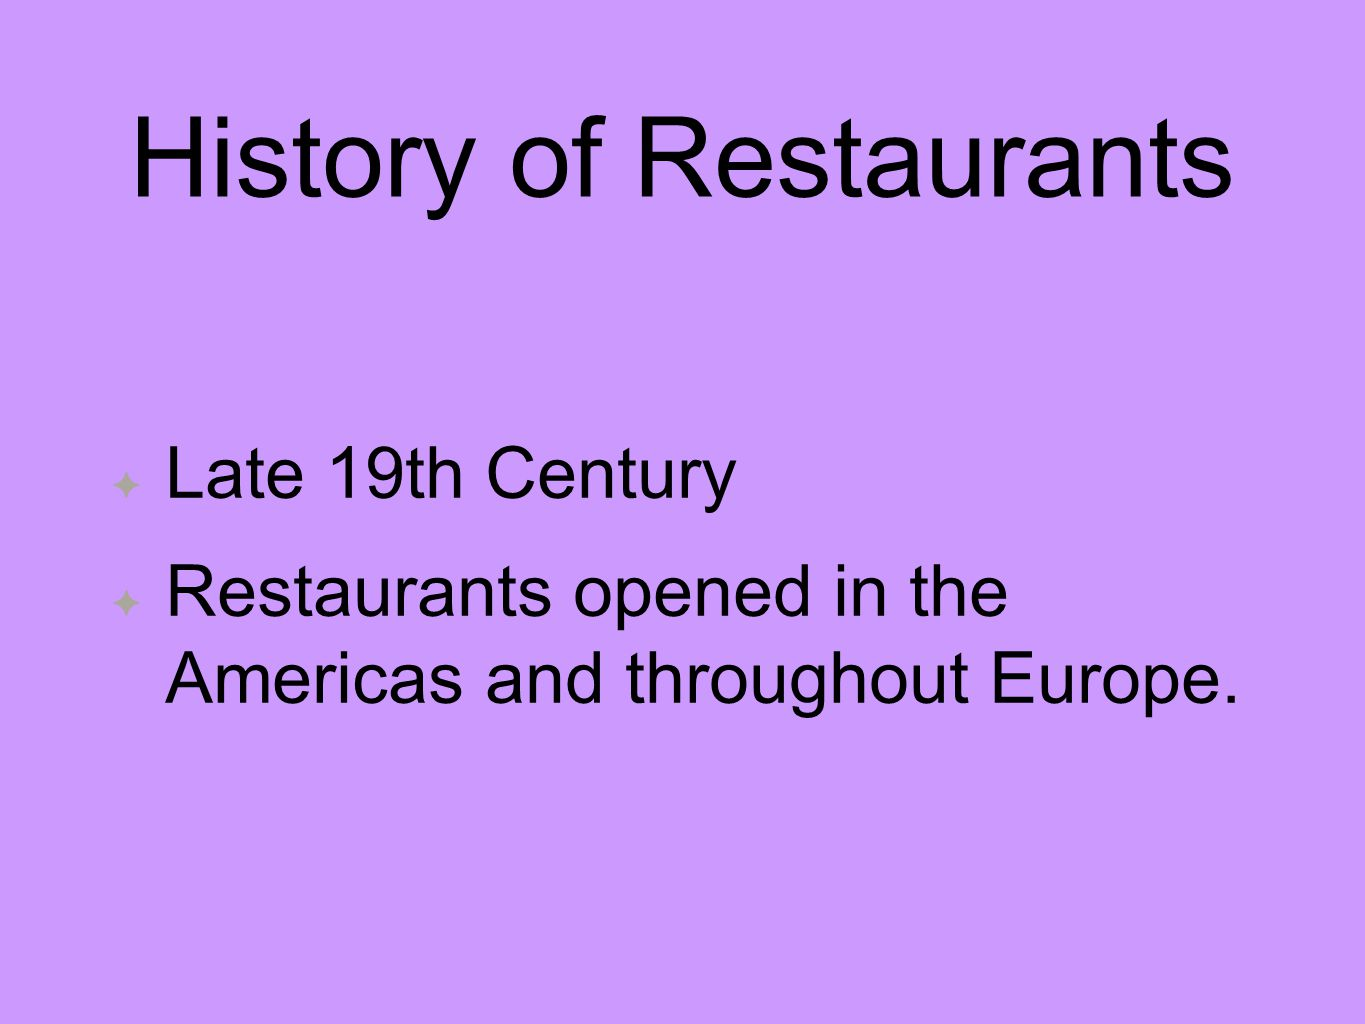 History of Restaurants Late 19th Century Restaurants opened in the Americas and throughout Europe.